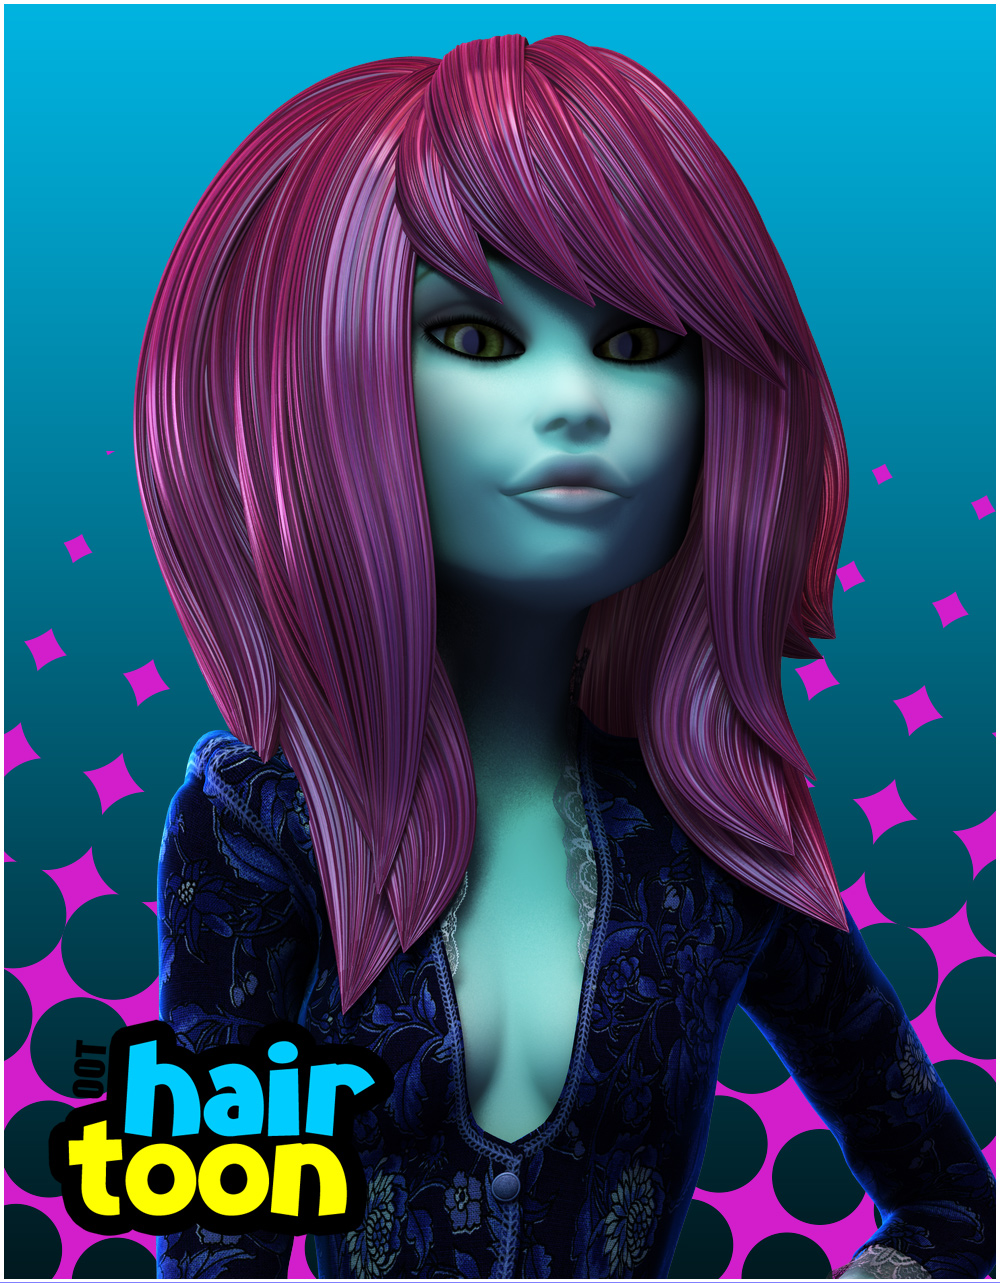 genesis hair style oot hair fringe style for genesis 2 s 3d 4893 | product image full 284292 d5e9c29bf245c99ec547518f50118e66